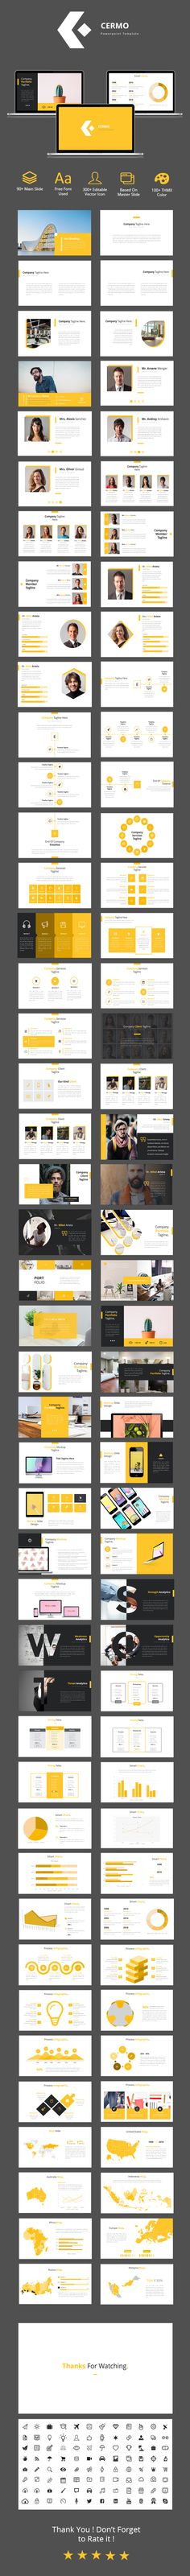 Cermo - Powerpoint Template - PowerPoint Templates Presentation Templates  Download link: https://graphicriver.net/item/cermo-powerpoint-template/22131166?ref=KlitVogli